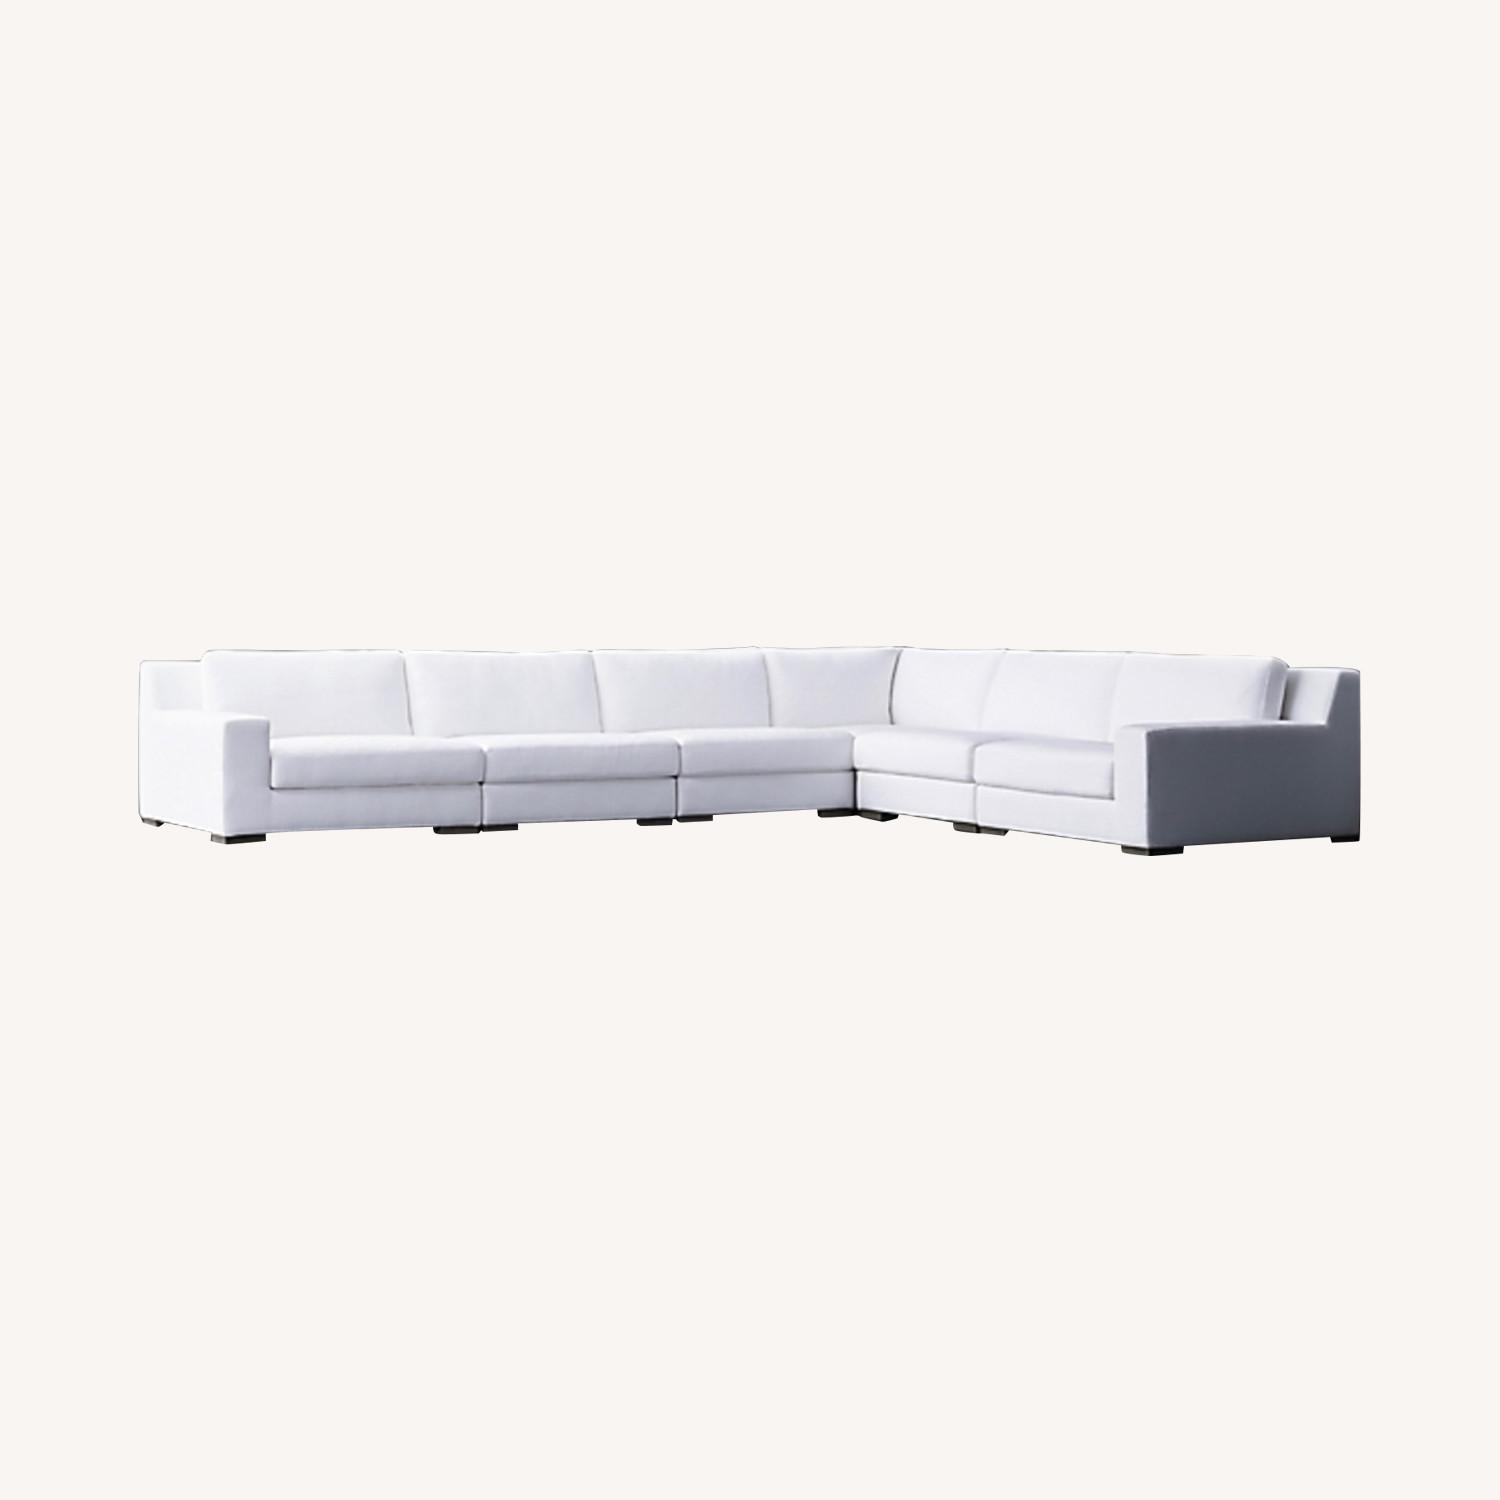 Restoration Hardware Modular Couch Sectional - image-0